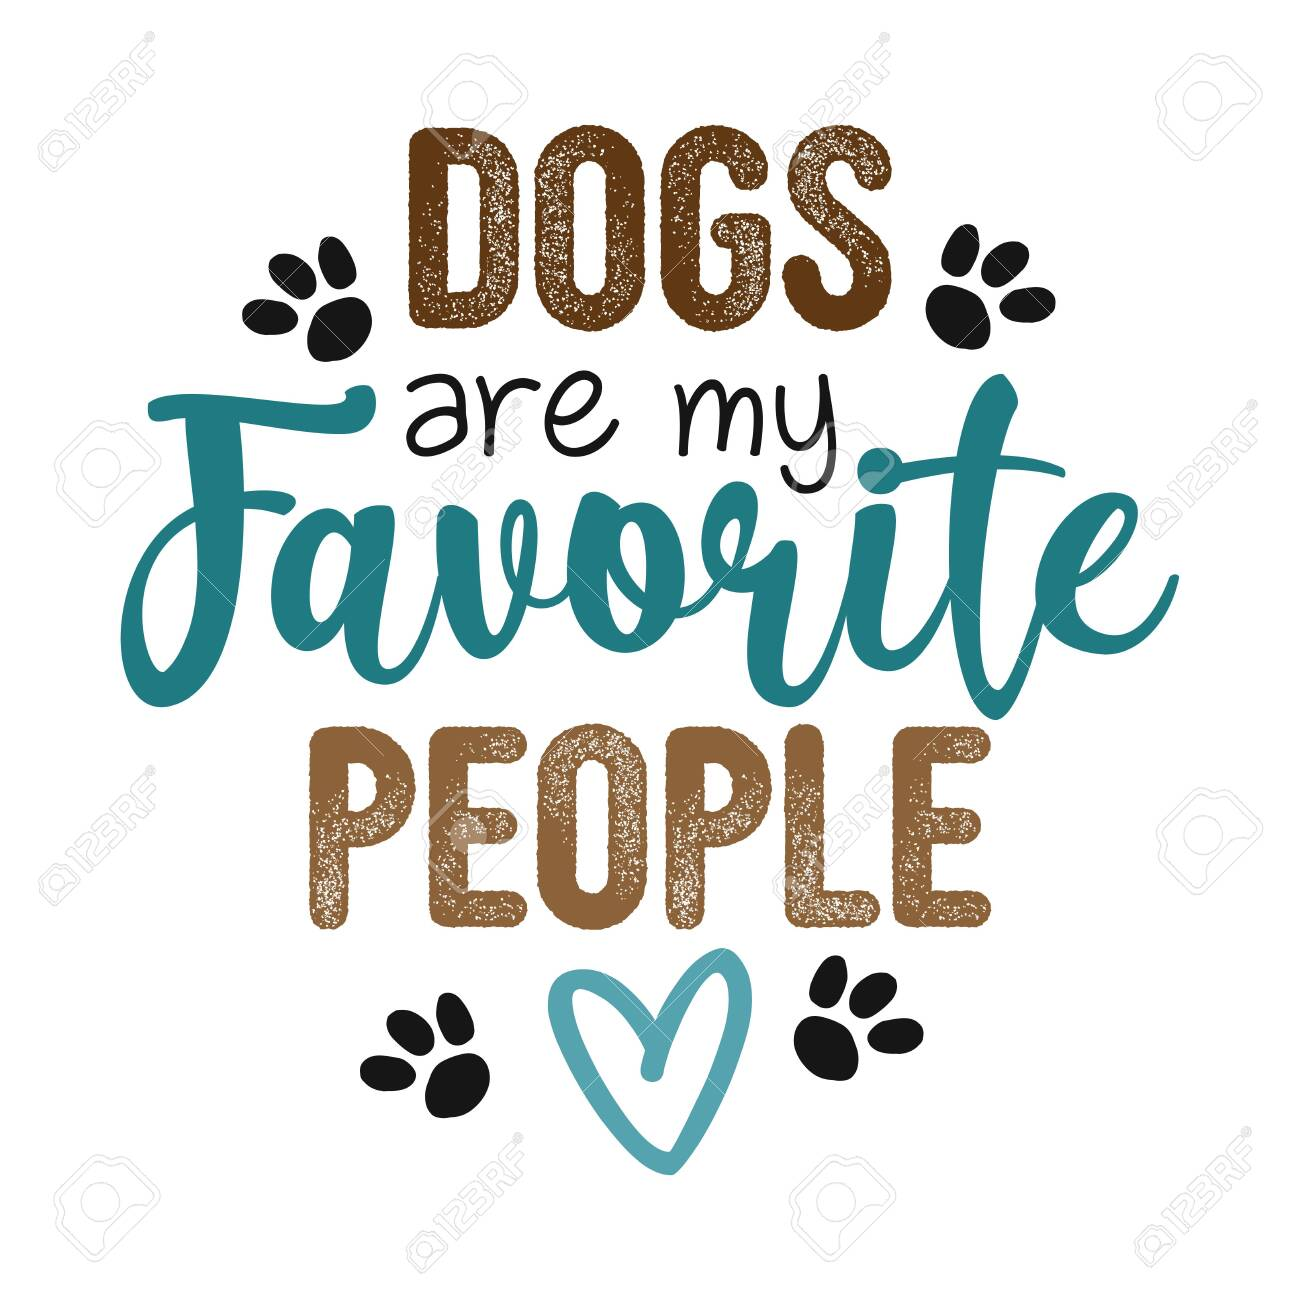 Dogs Are My Favorite People Hand Drawn Positive Phrase Modern Royalty Free Cliparts Vectors And Stock Illustration Image 147780017